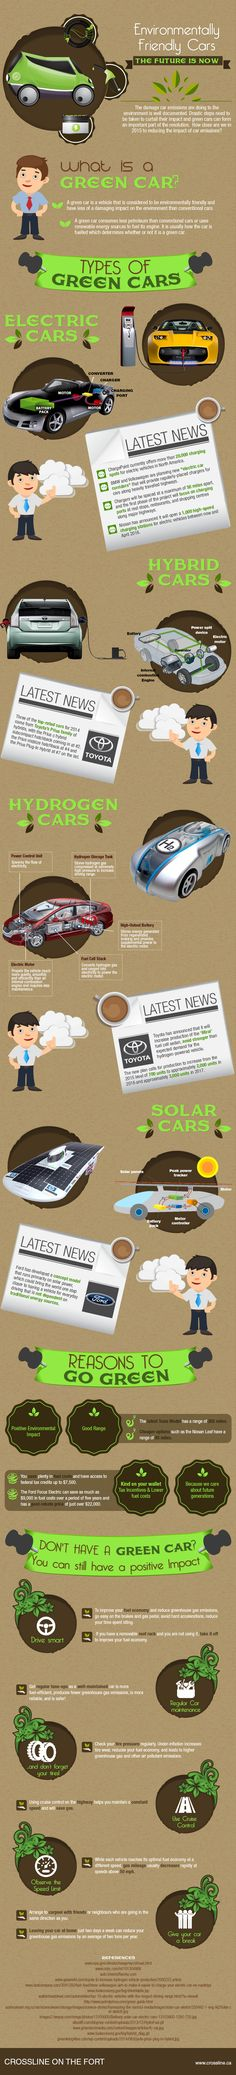 This infographic details the types of green cars. From electric cars, hybrid cars, hydrogen cars and solar cars.